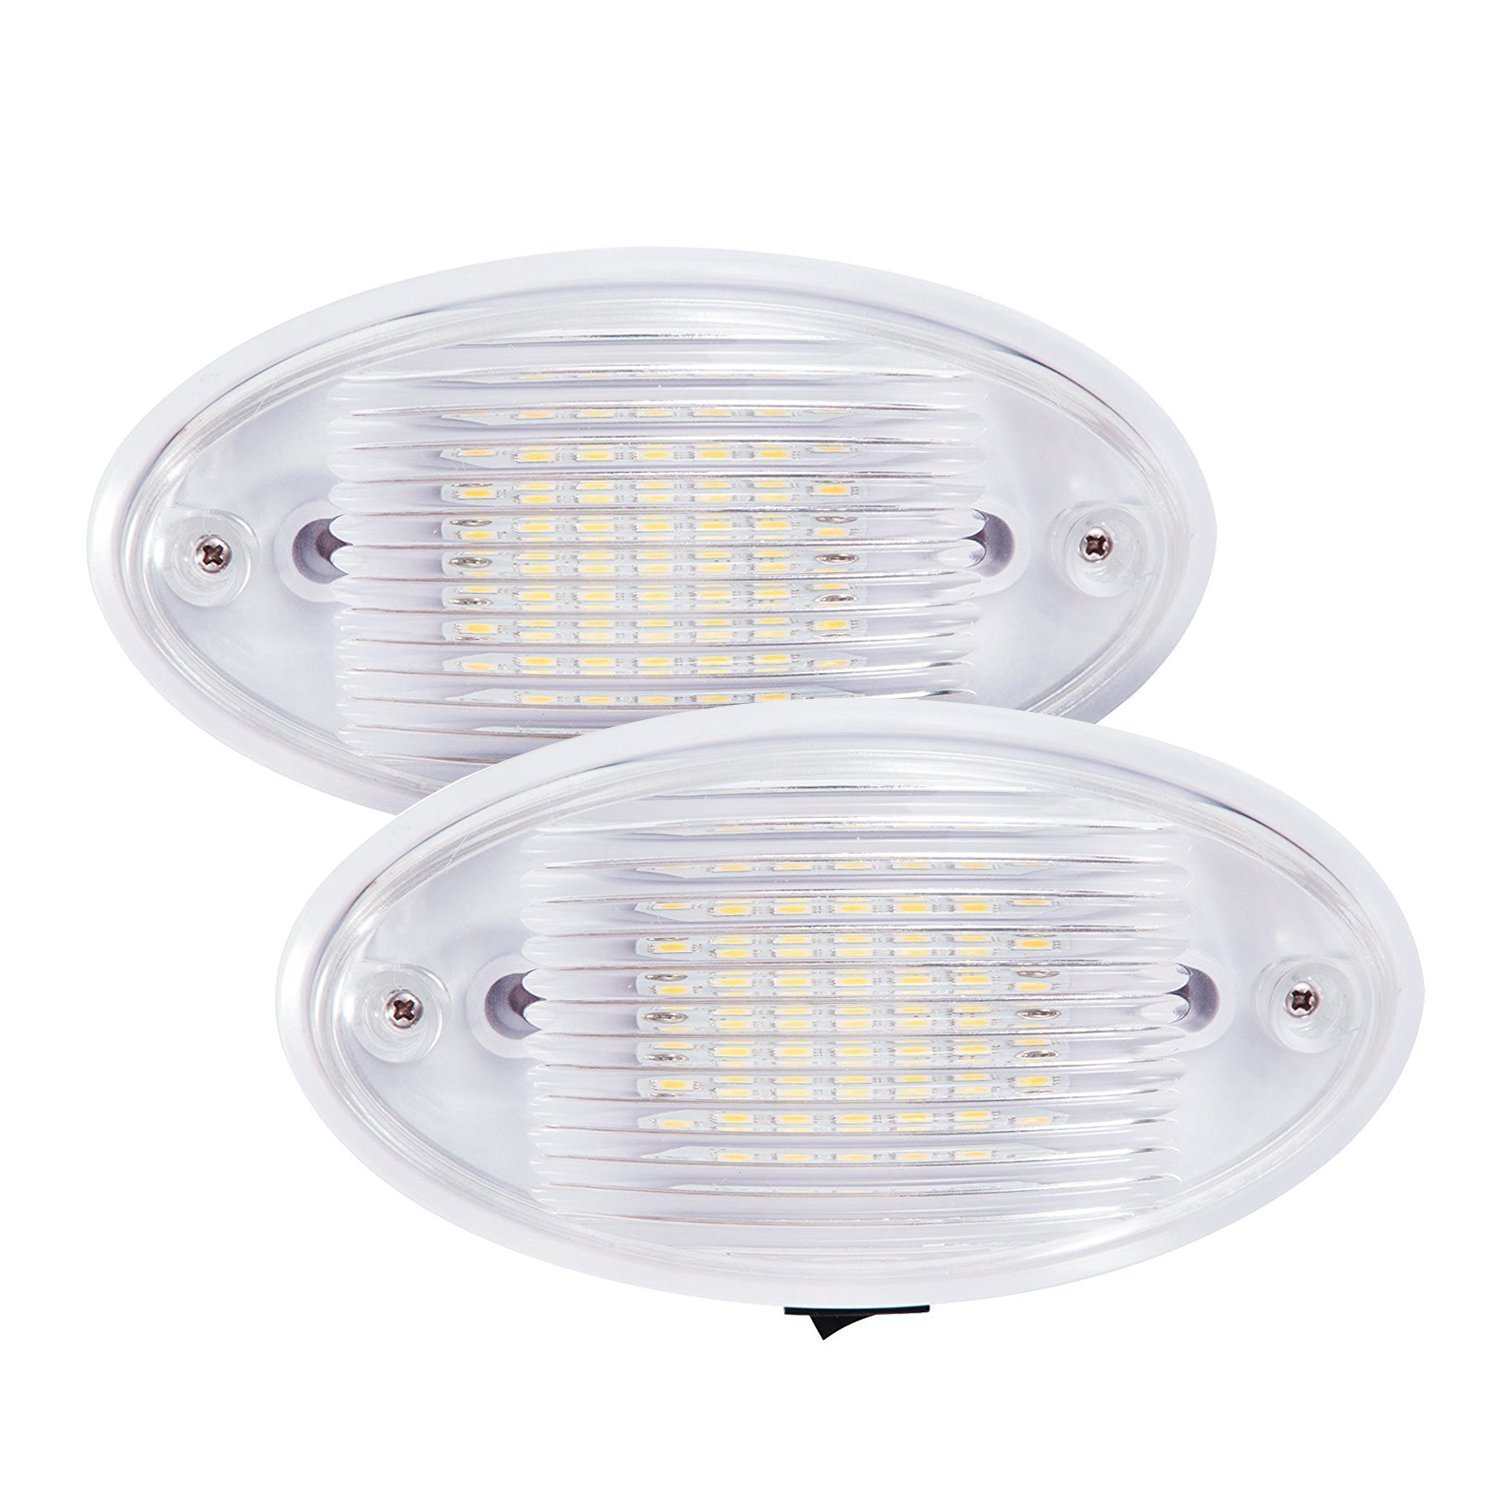 2x LED Ceiling Porch Light Fixture 12V RV Interior